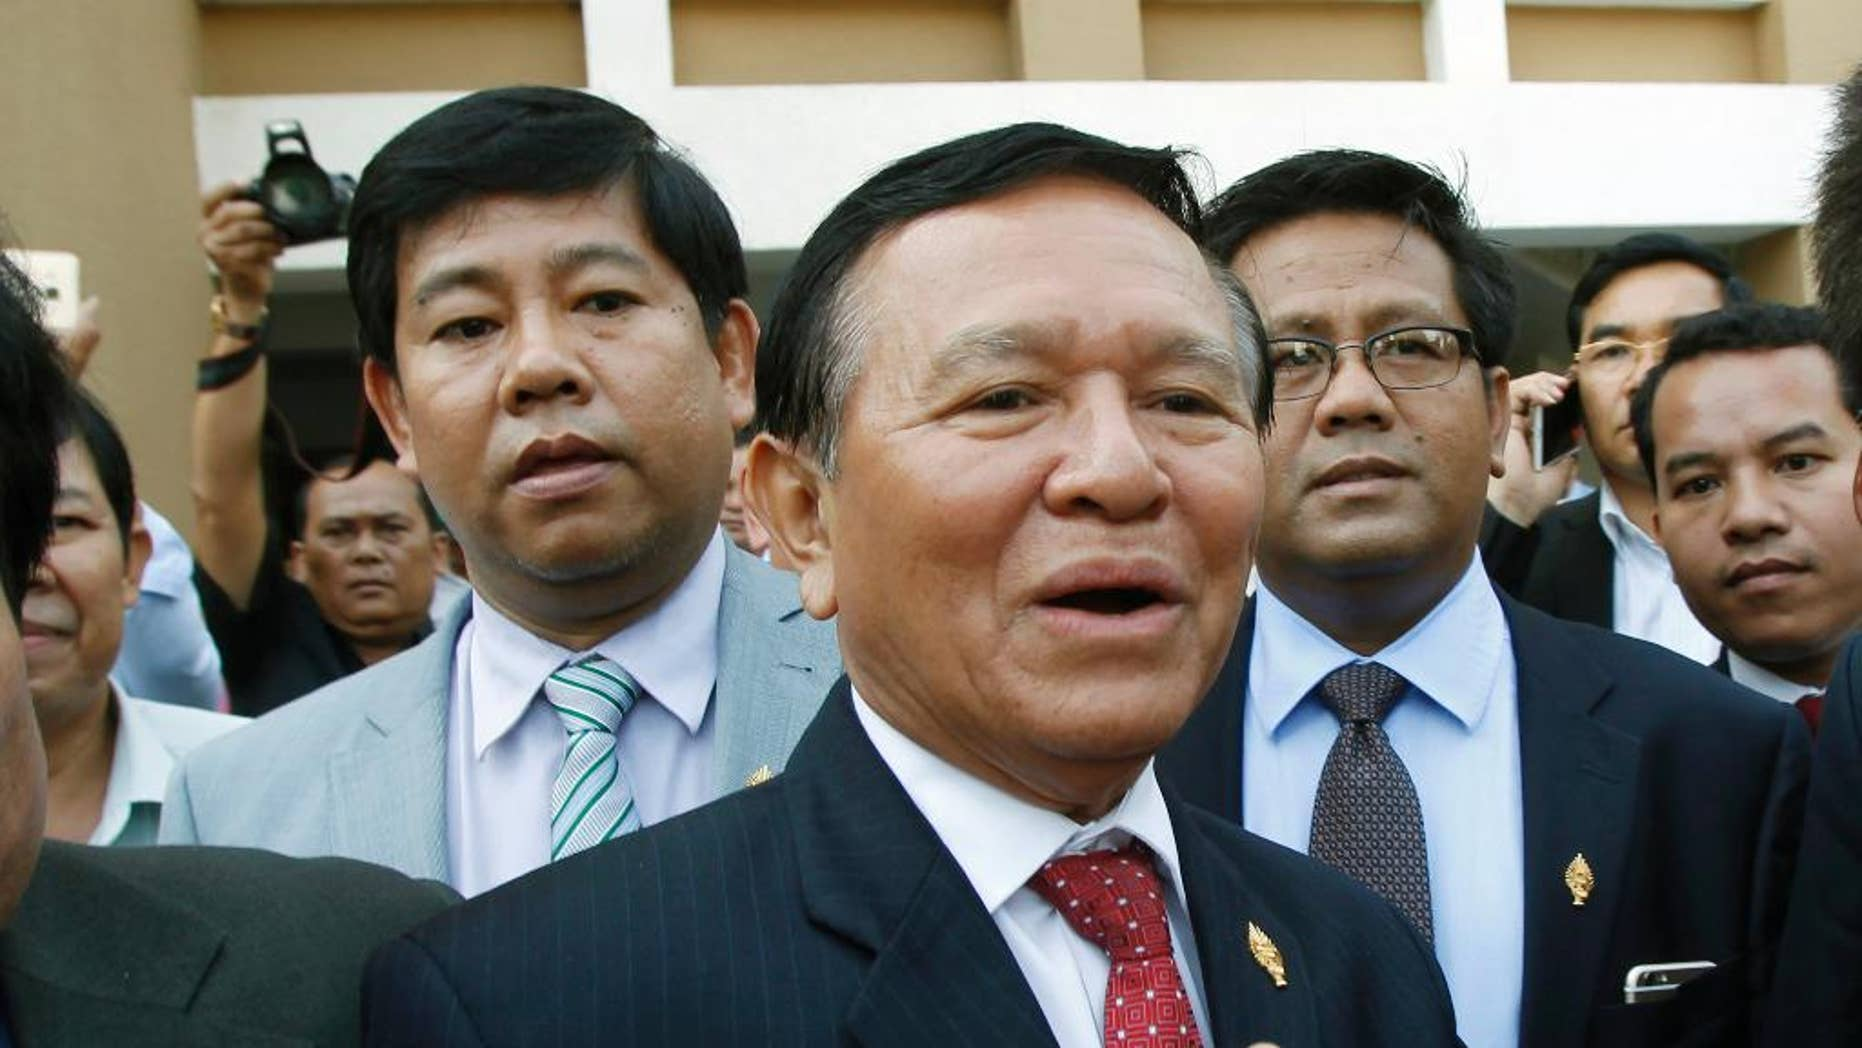 In this April 8, 2015 photo, Cambodia's main opposition Cambodia National Rescue Party Deputy President and National Assembly Deputy President Kem Sokha, center, speaks to the media outside the Phnom Penh Municipality Court in Phnom Penh, Cambodia. The senior leader of Cambodia's opposition party was stripped of his post as the vice-president of parliament in a skewed and unexpected vote Friday, Oct. 30, 2015 that was attended only by the ruling party. (AP Photo/Heng Sinith)